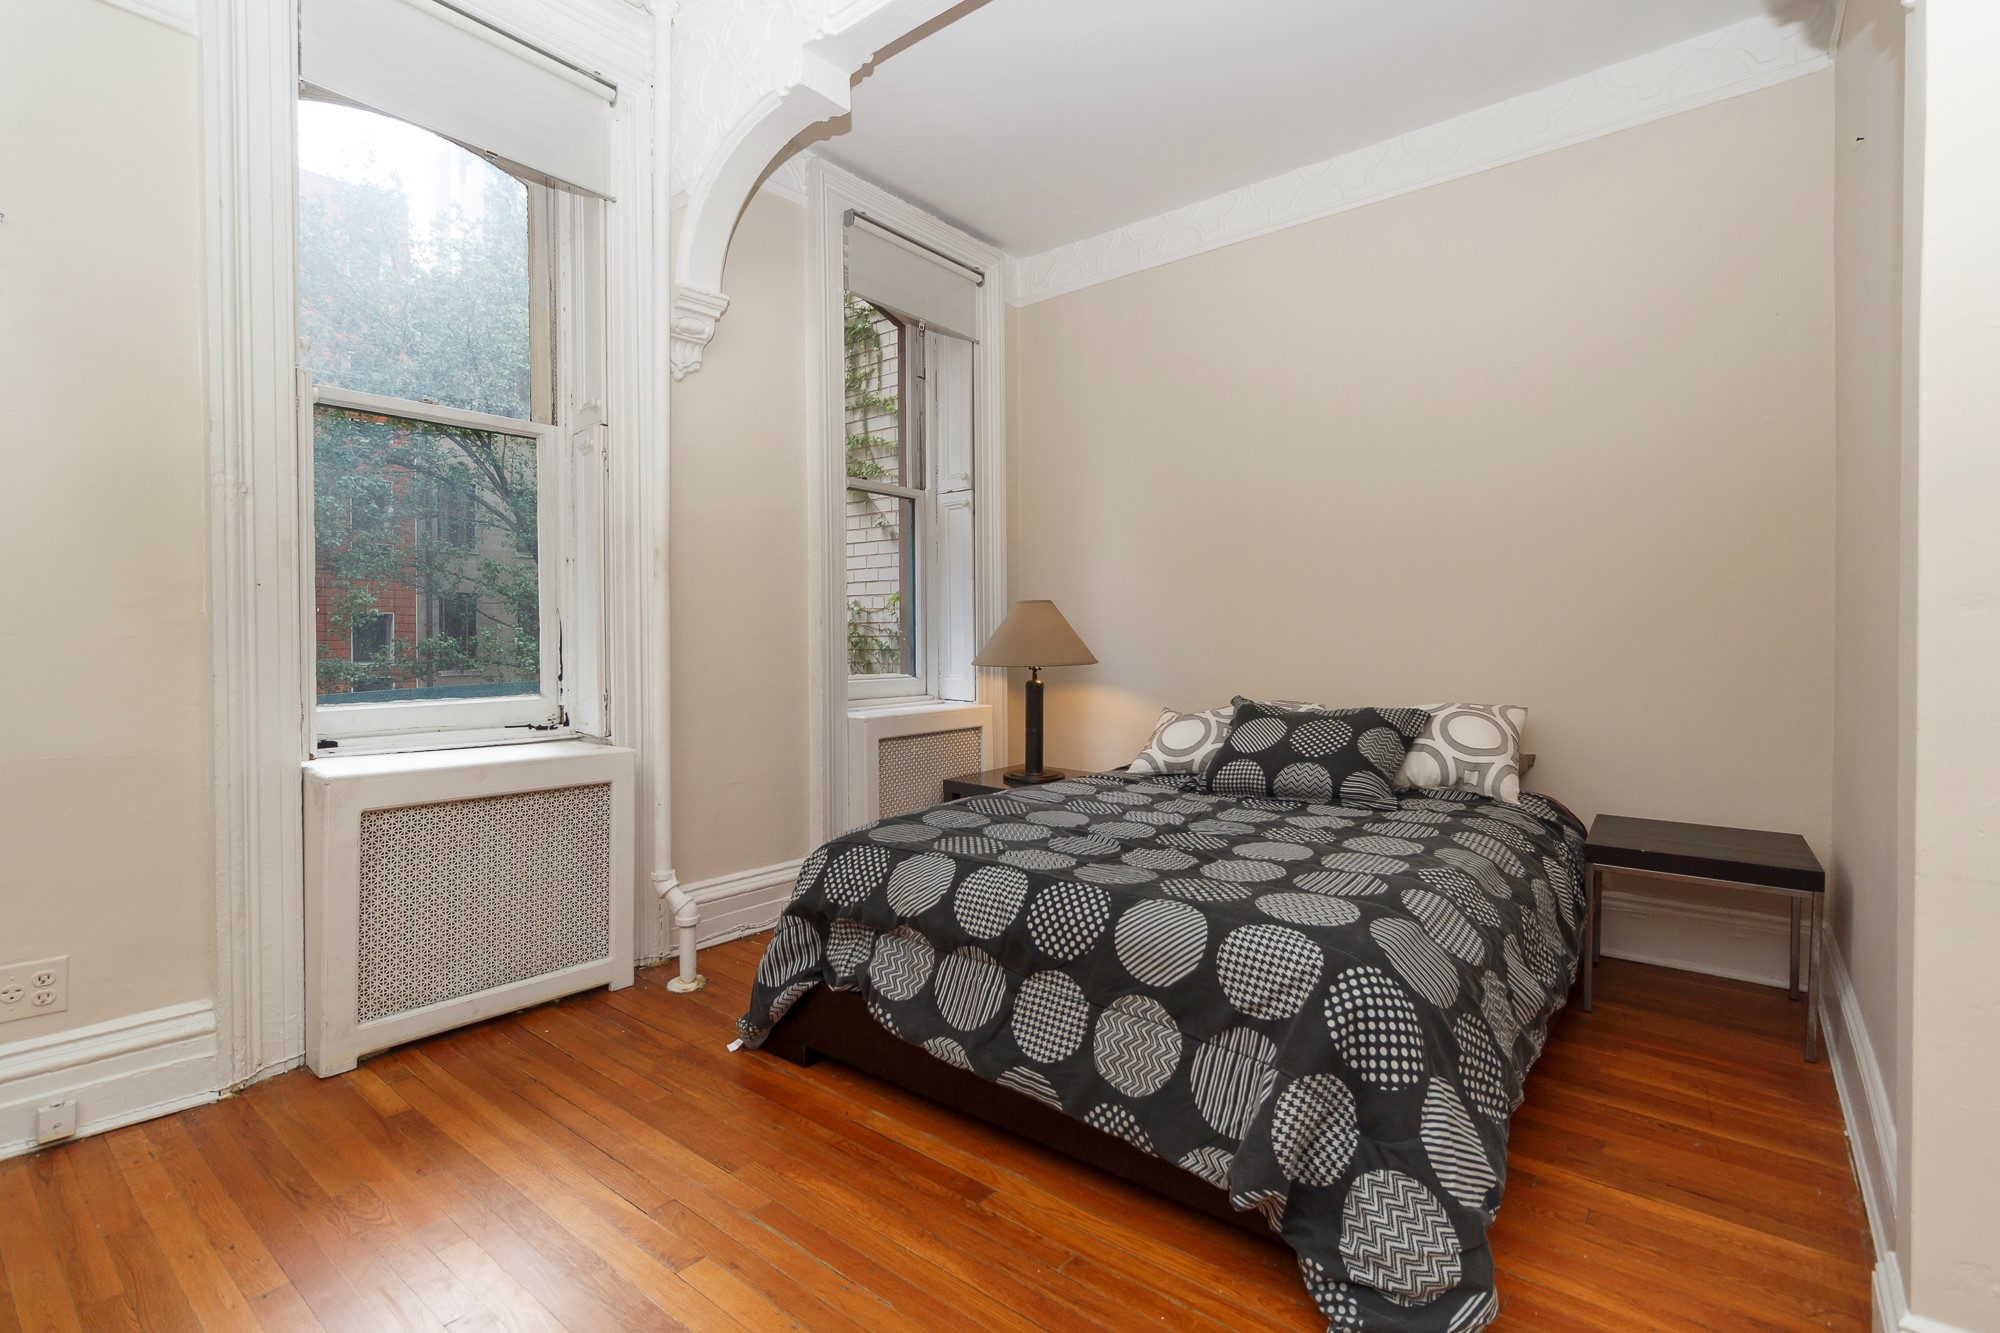 Ny apartment photographer latest work one bedroom - 1 bedroom apartment in east new york ...